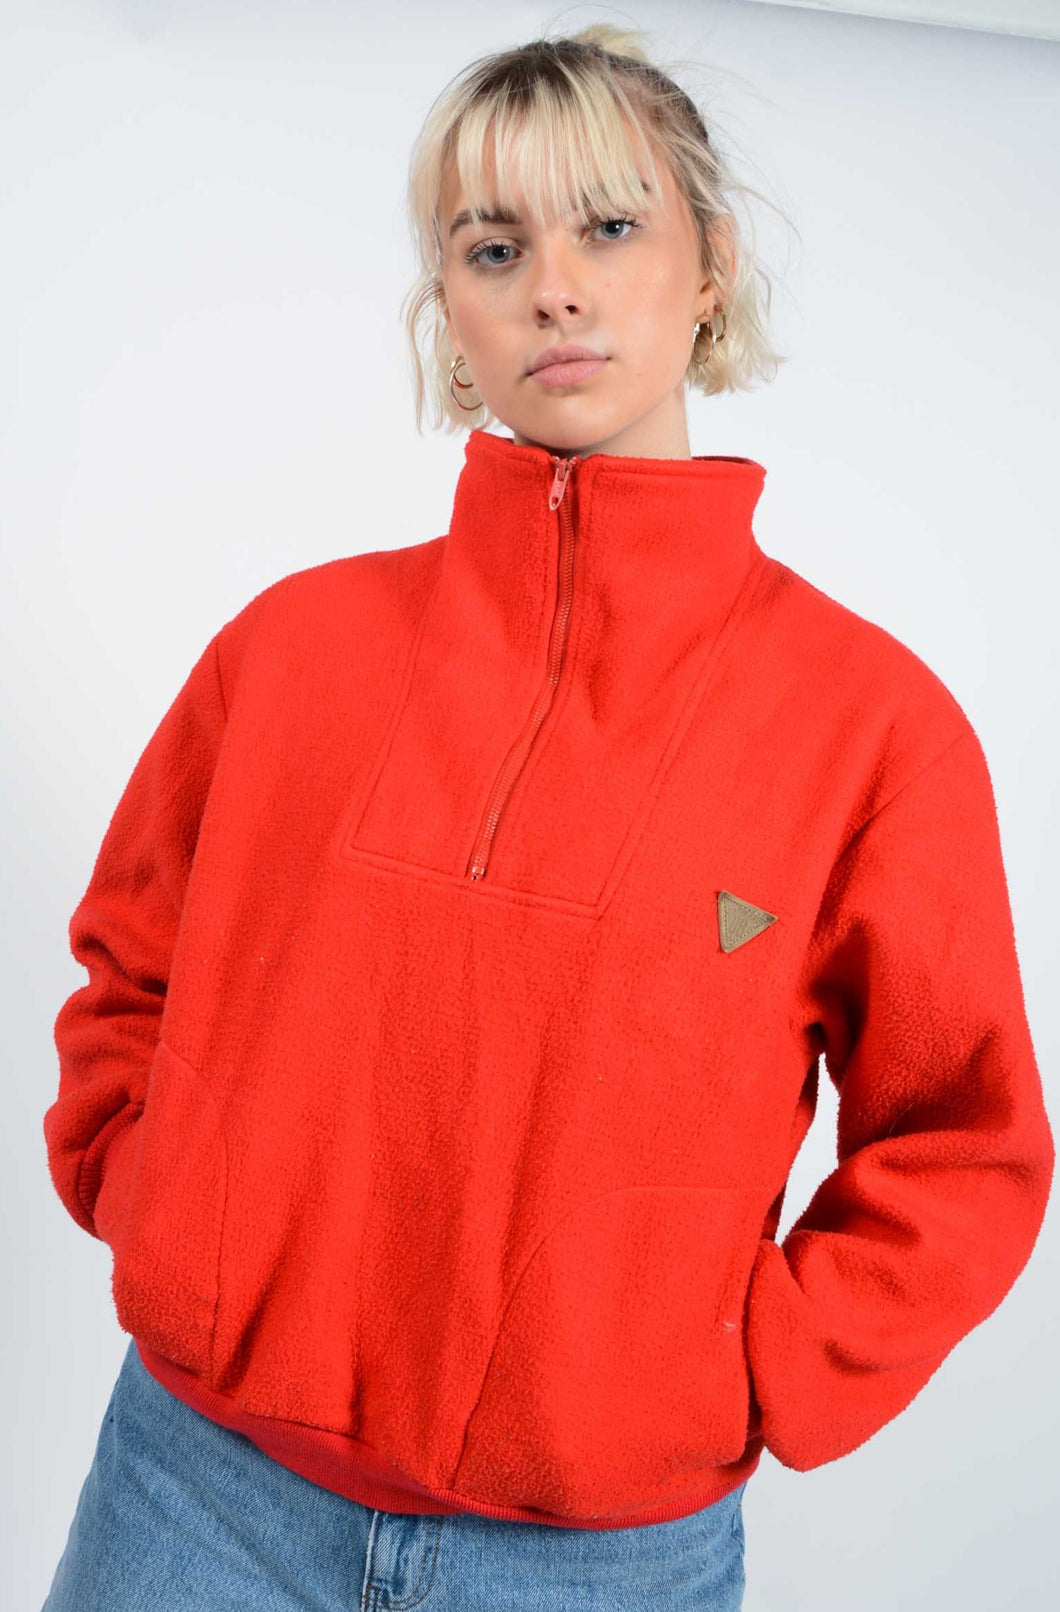 Vintage 90's Fleece Jumper 1/4 Zip Cosy Red - M